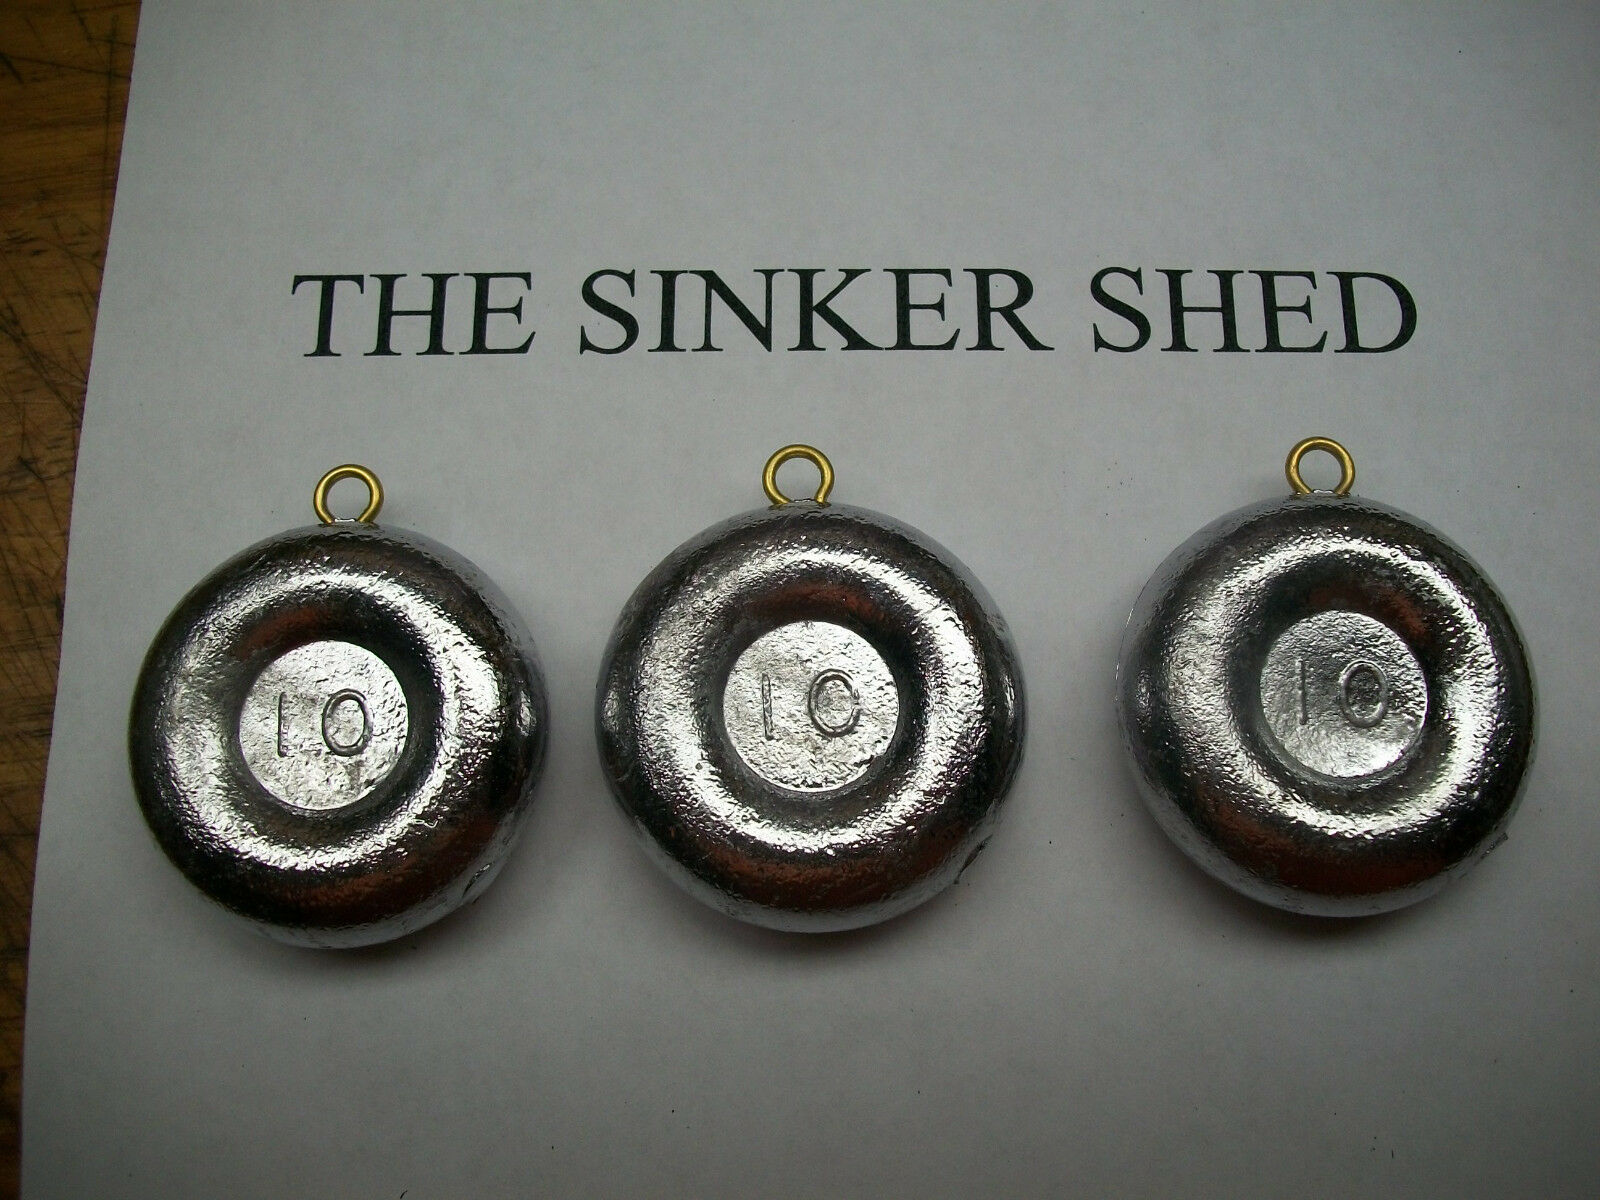 10 oz river coin  sinkers   decoy weight - choice 6 12 25 50 100 -  FREE SHIPPING  at the lowest price